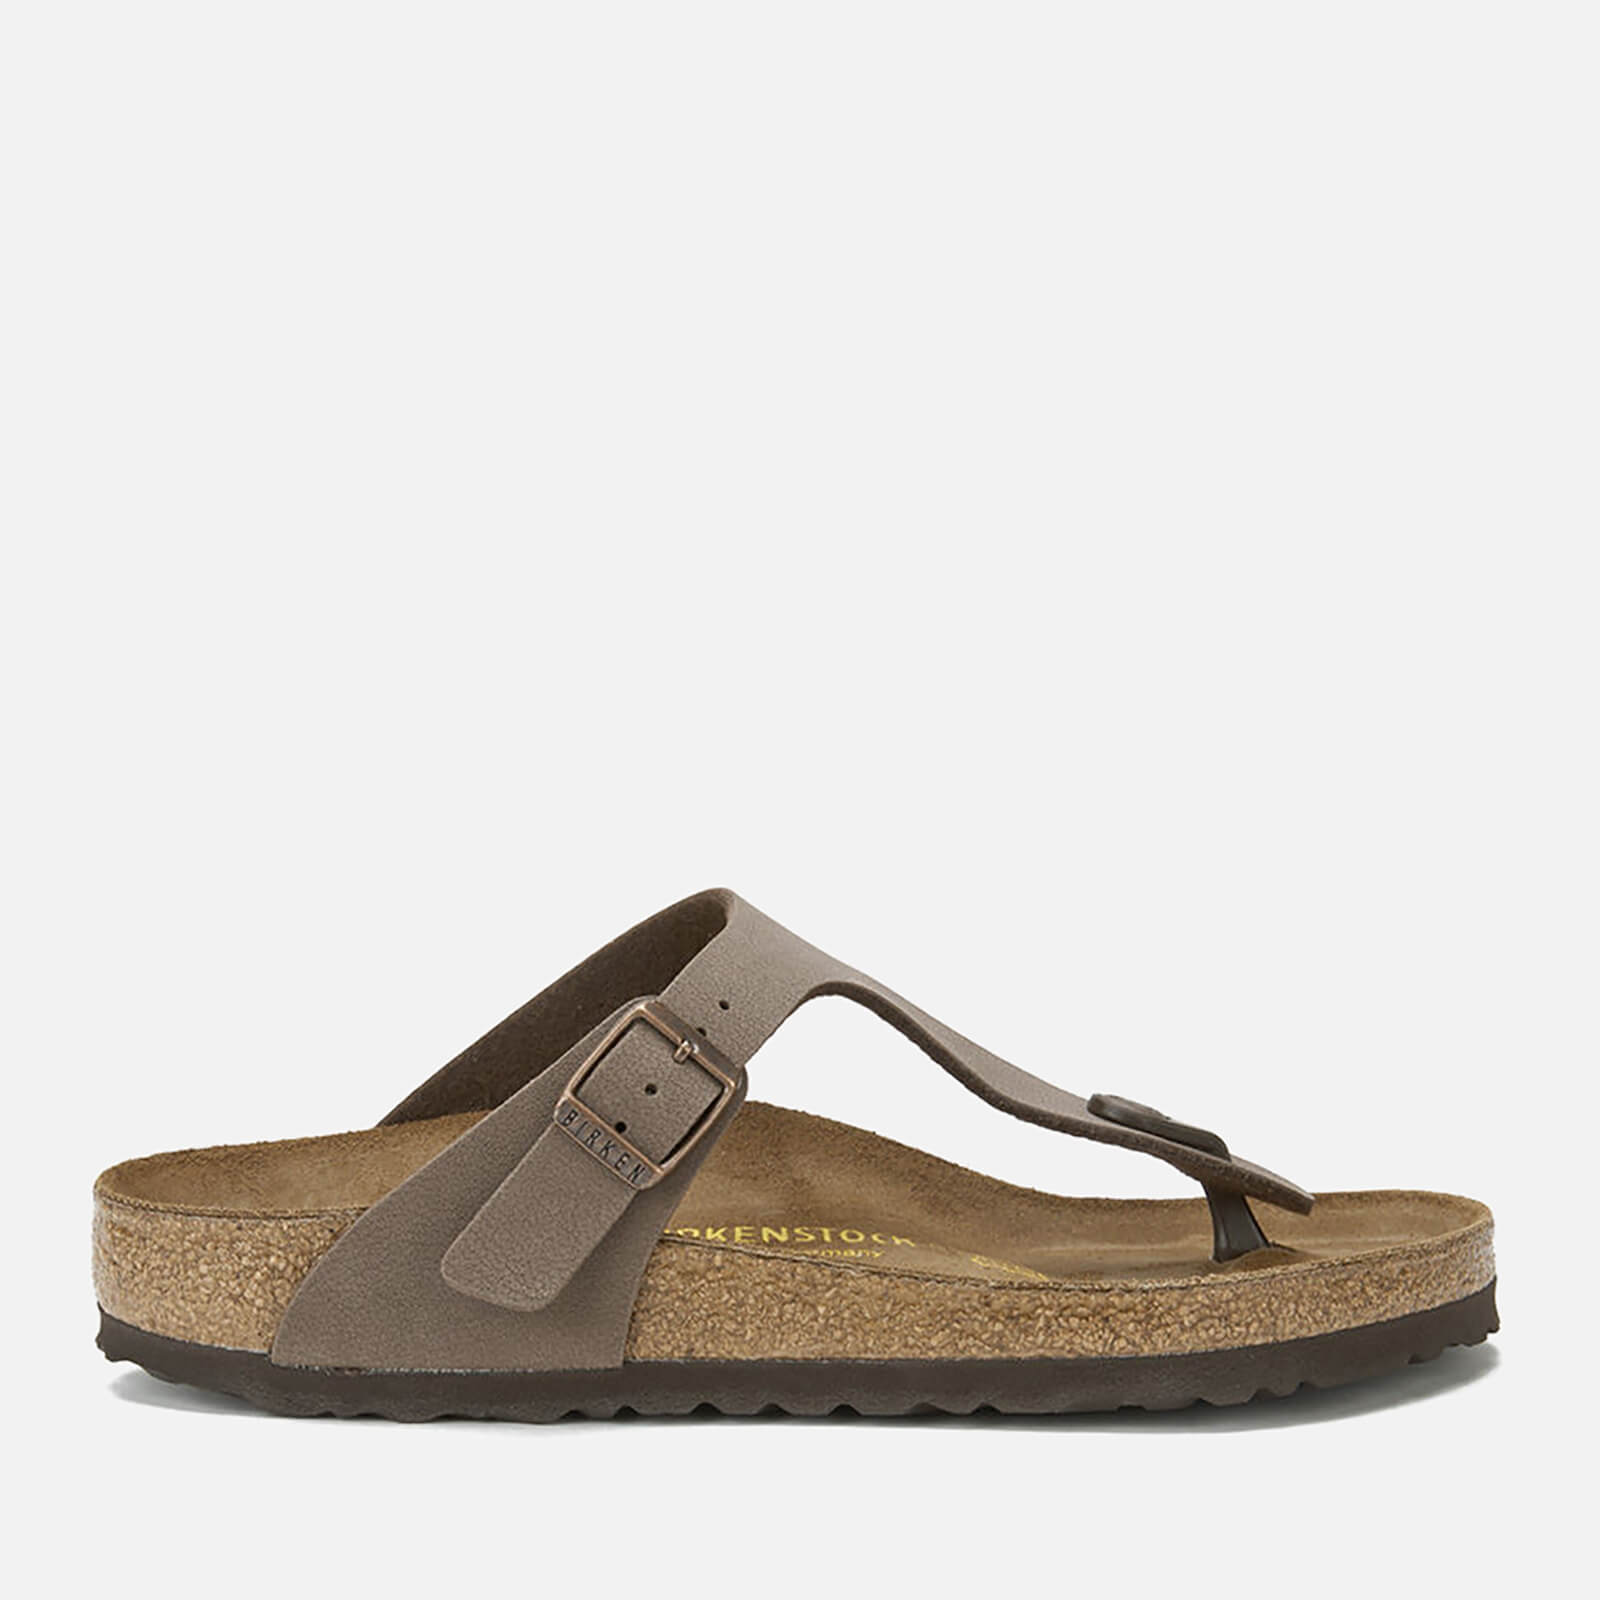 1e7dd86dfb8 Birkenstock Buyer s Guide  Everything You Need to Know - Allsole